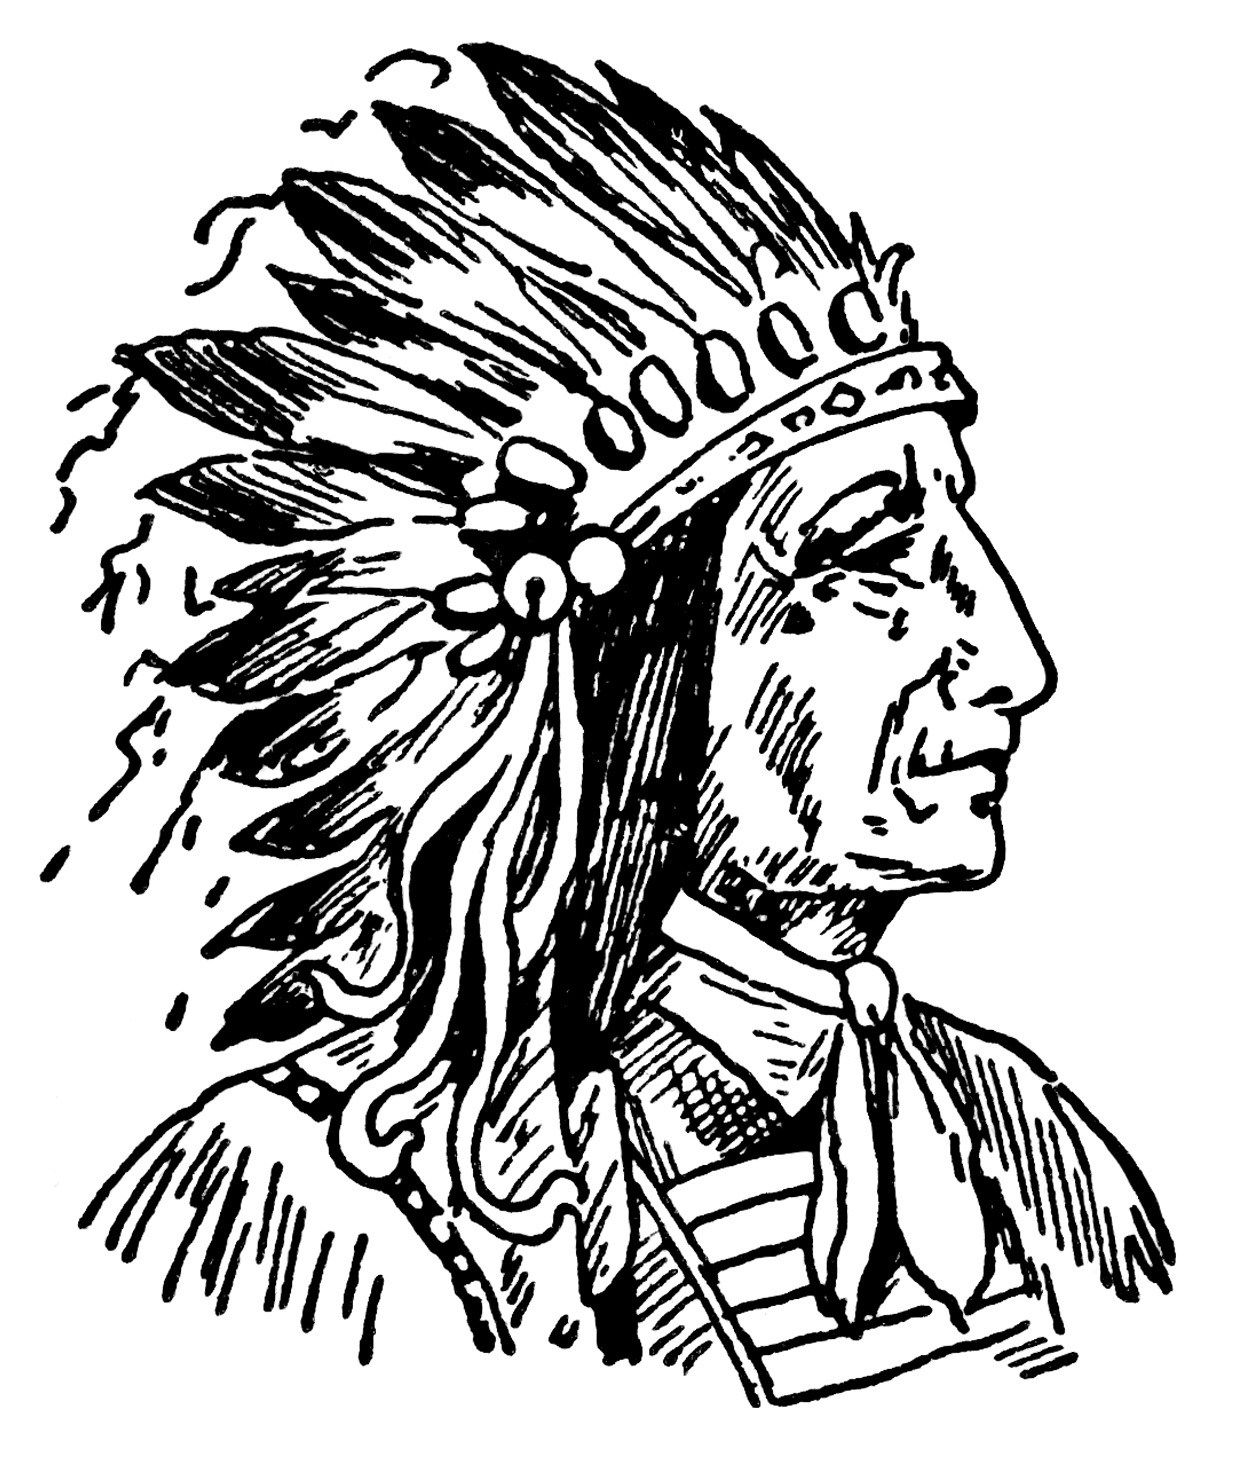 Native american chief clipart graphic black and white stock Indian chief clip art, vintage Native American illustration ... graphic black and white stock